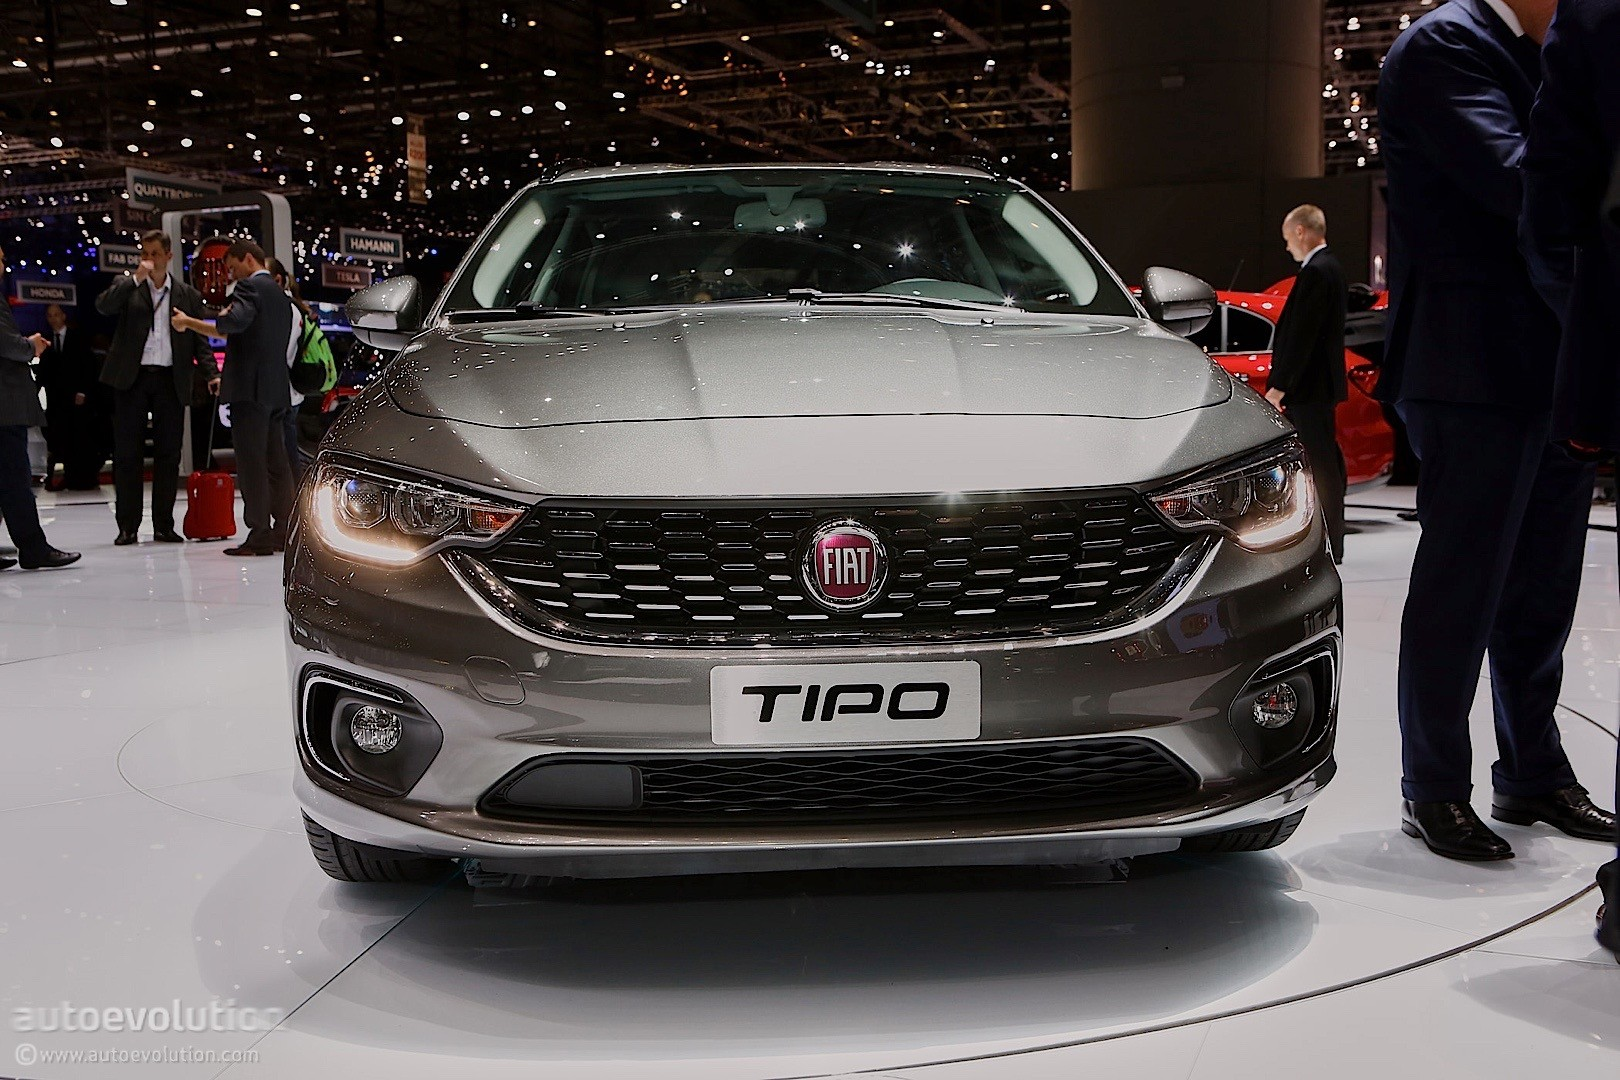 2016 Dodge Journey >> 2016 Fiat Tipo Comes in Hatchback and Estate Flavors at the Geneva Motor Show - autoevolution